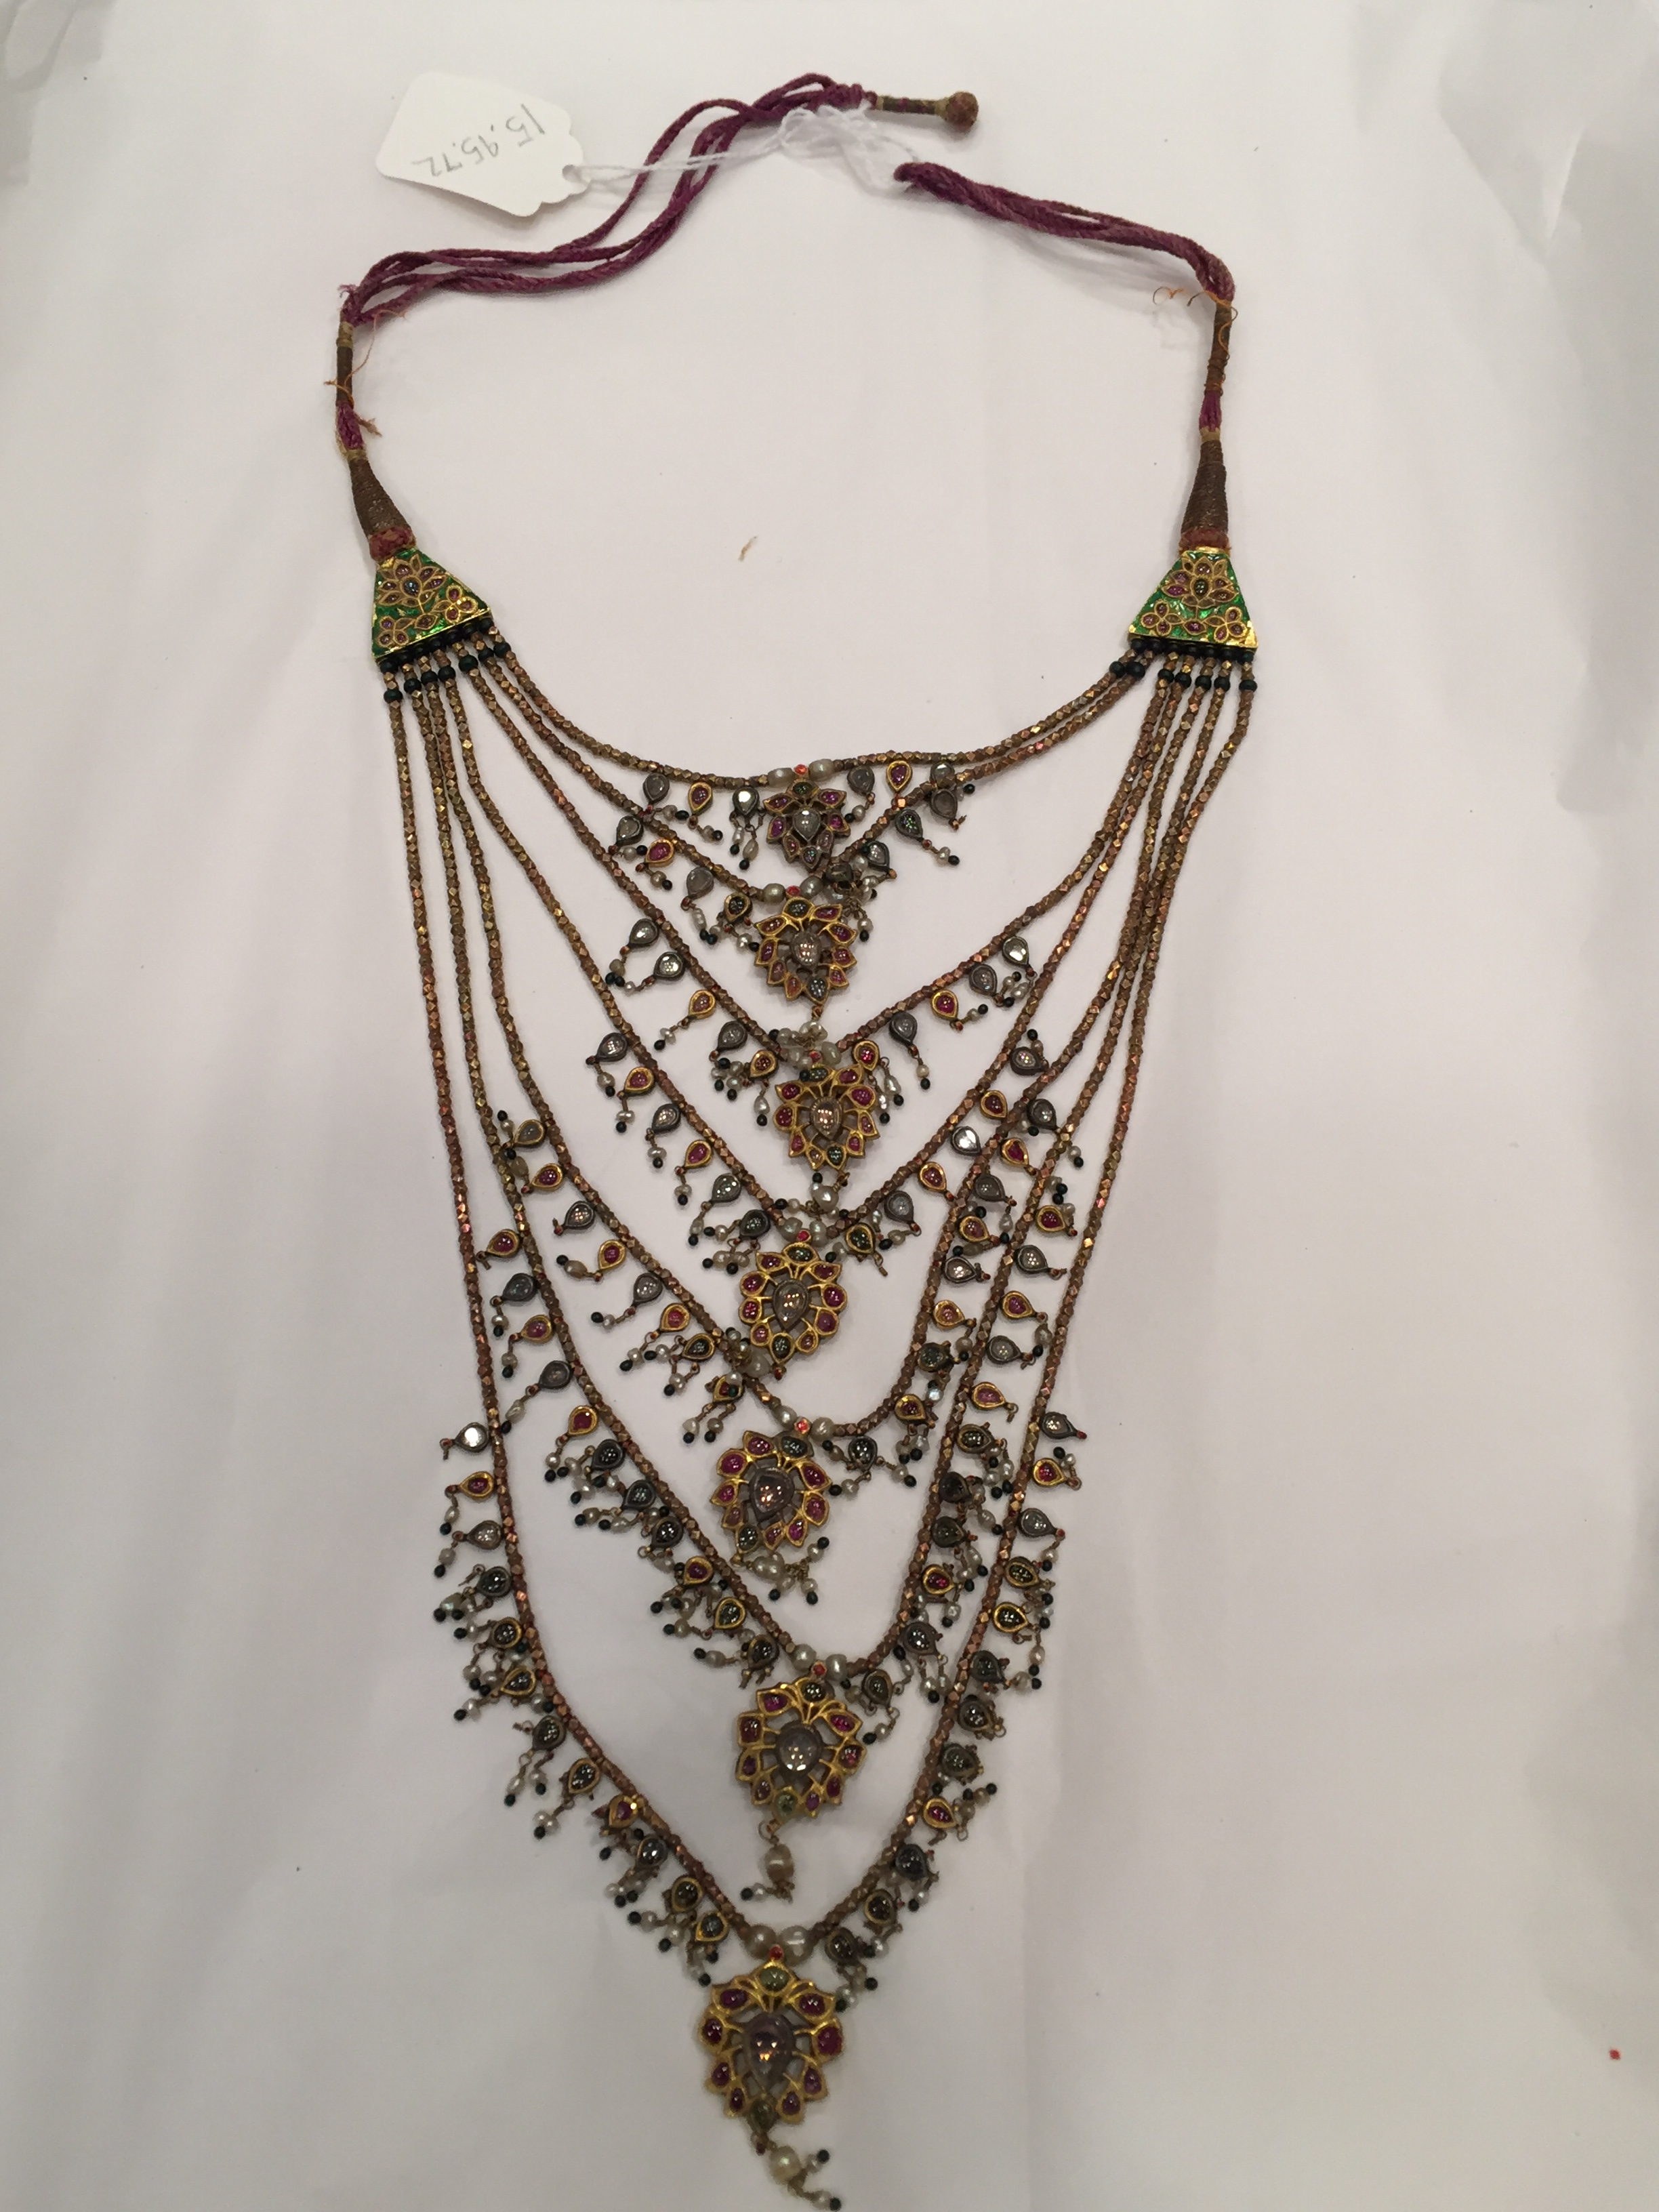 Seven Stranded Necklace (Satlari) | The Met In 2019 Rock Crystal April Droplet Pendant Necklaces (View 21 of 25)